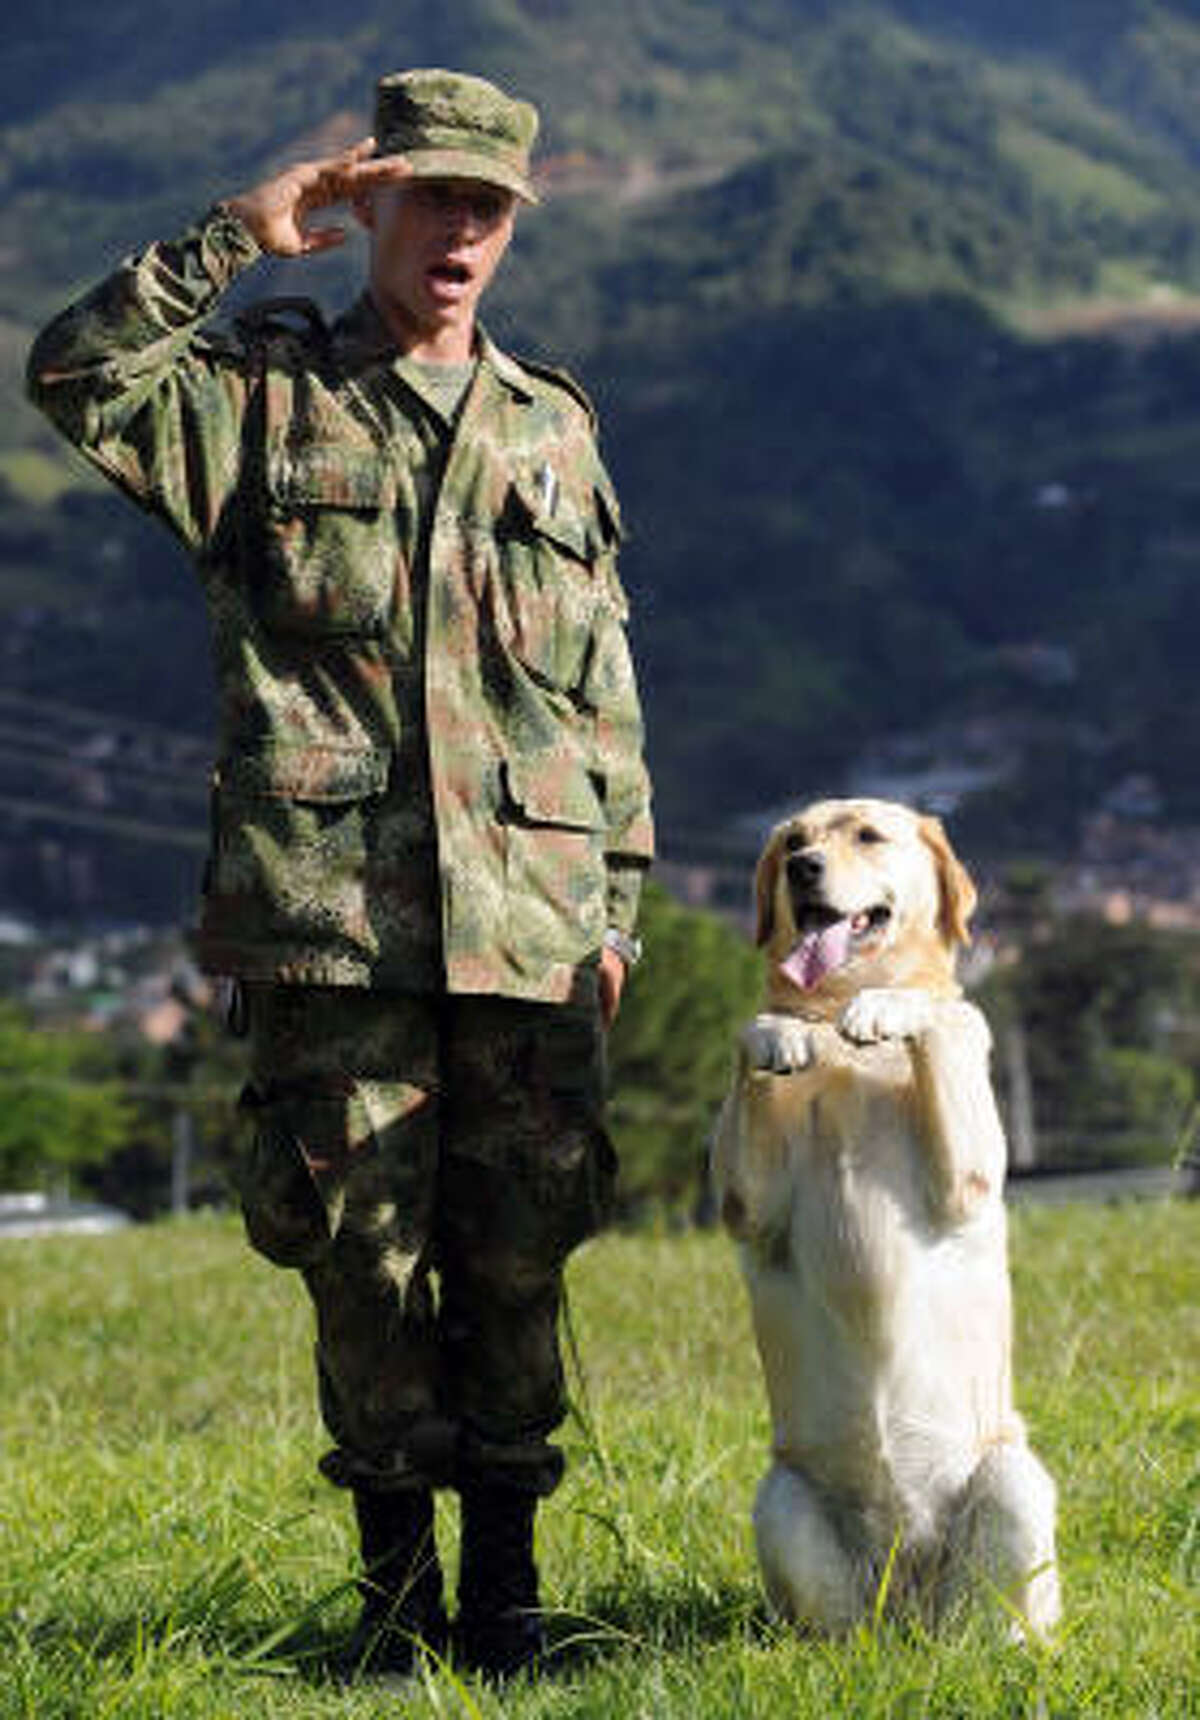 A Colombian soldier and his explosive sniffer dog salute after an exhibition at Pedro Nel Ospina Military Base in Bello, Antioquia Department, Colombia.